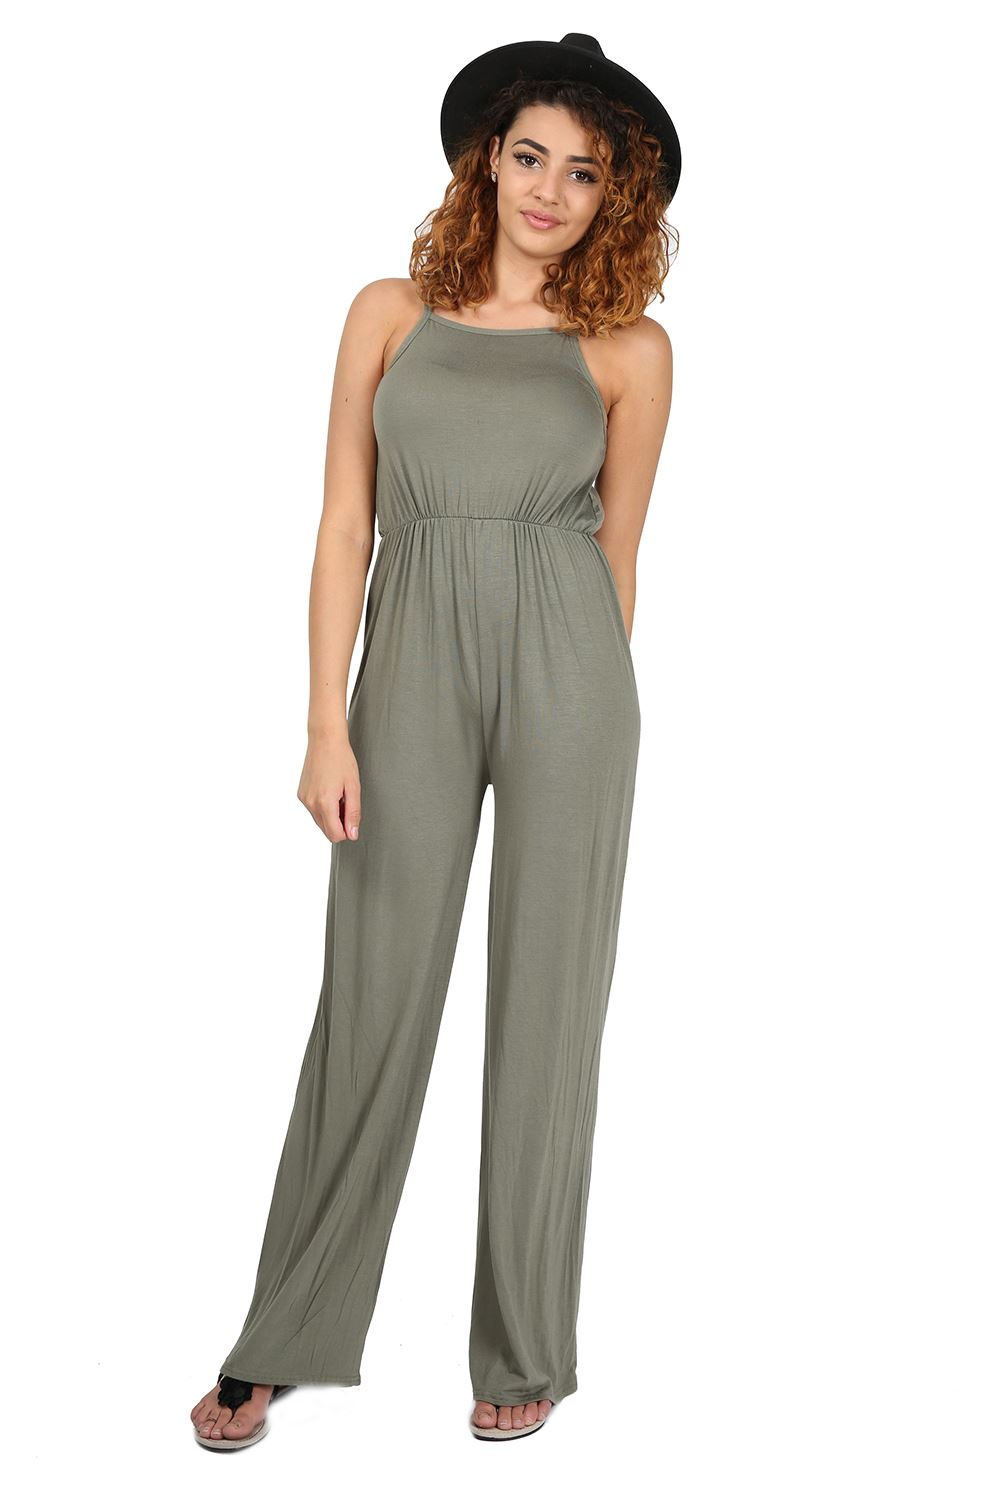 Book Of Womens Jumpsuits Uk In Canada By Mia U2013 Playzoa.com